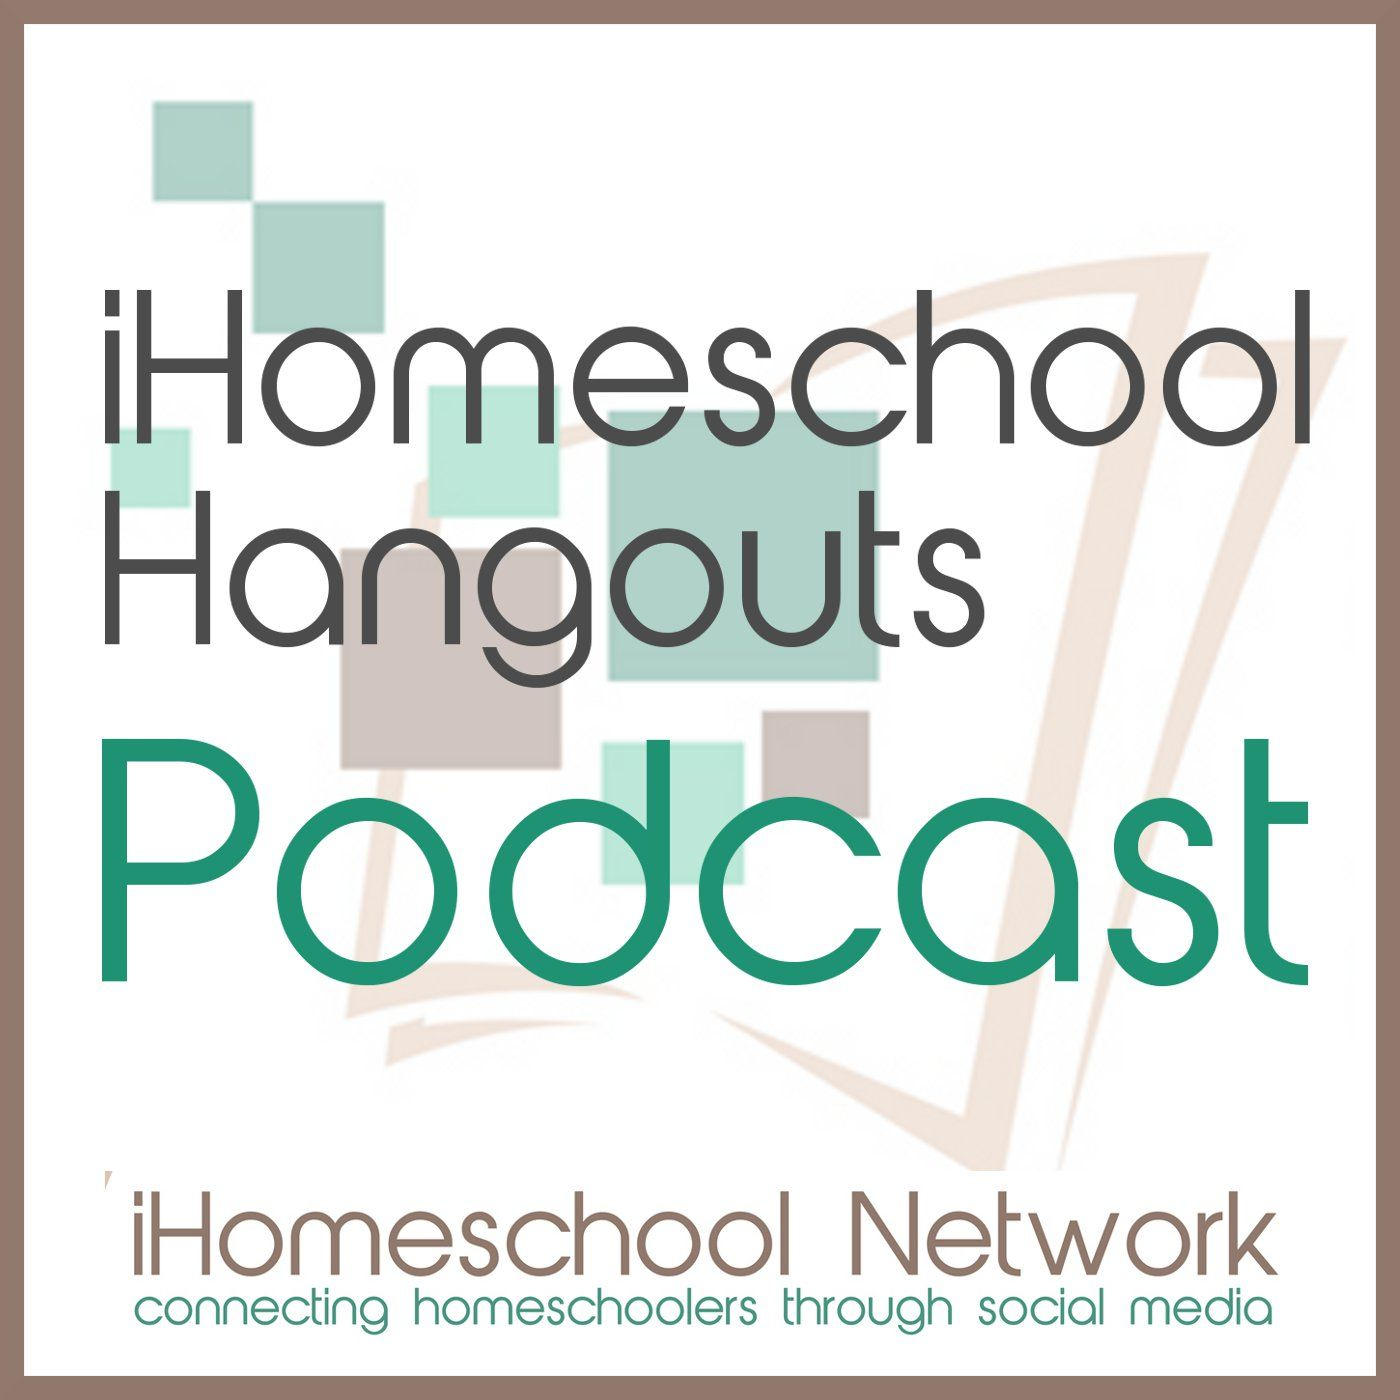 Online Classes for Homeschool – iHomeschool Hangout & Podcast | iHomeschool Network